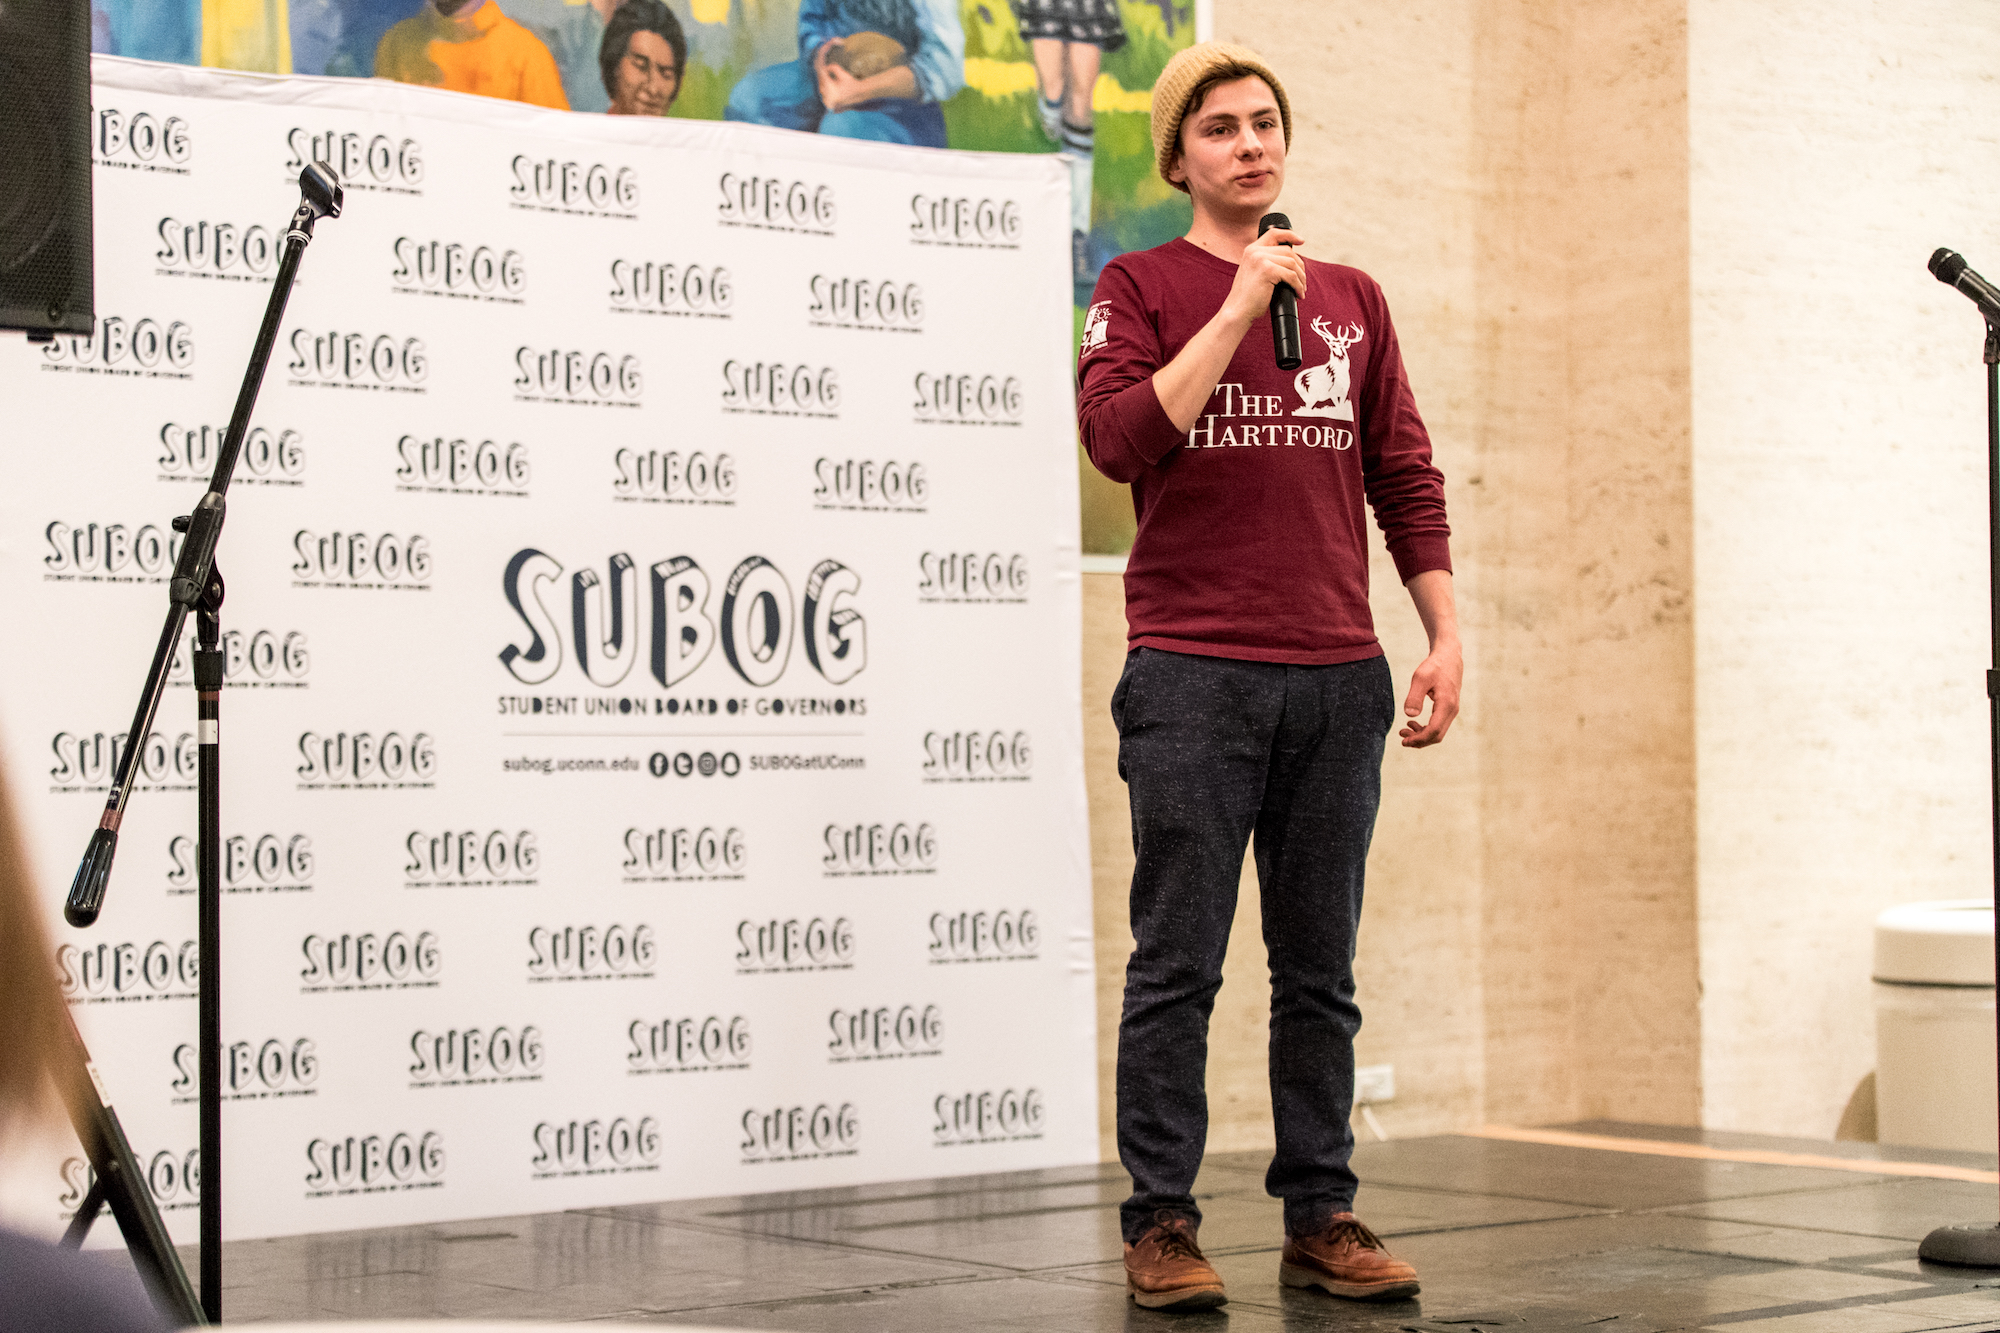 UConn student Scott Bosco (9th semester Biology major) performs stand-up comedy for the SUBOG Open Mic night in the North Lobby of the UConn Student Union in Storrs, CT on Wednesday, Jan 25, 2017. (Owen Bonaventura/The Daily Campus)